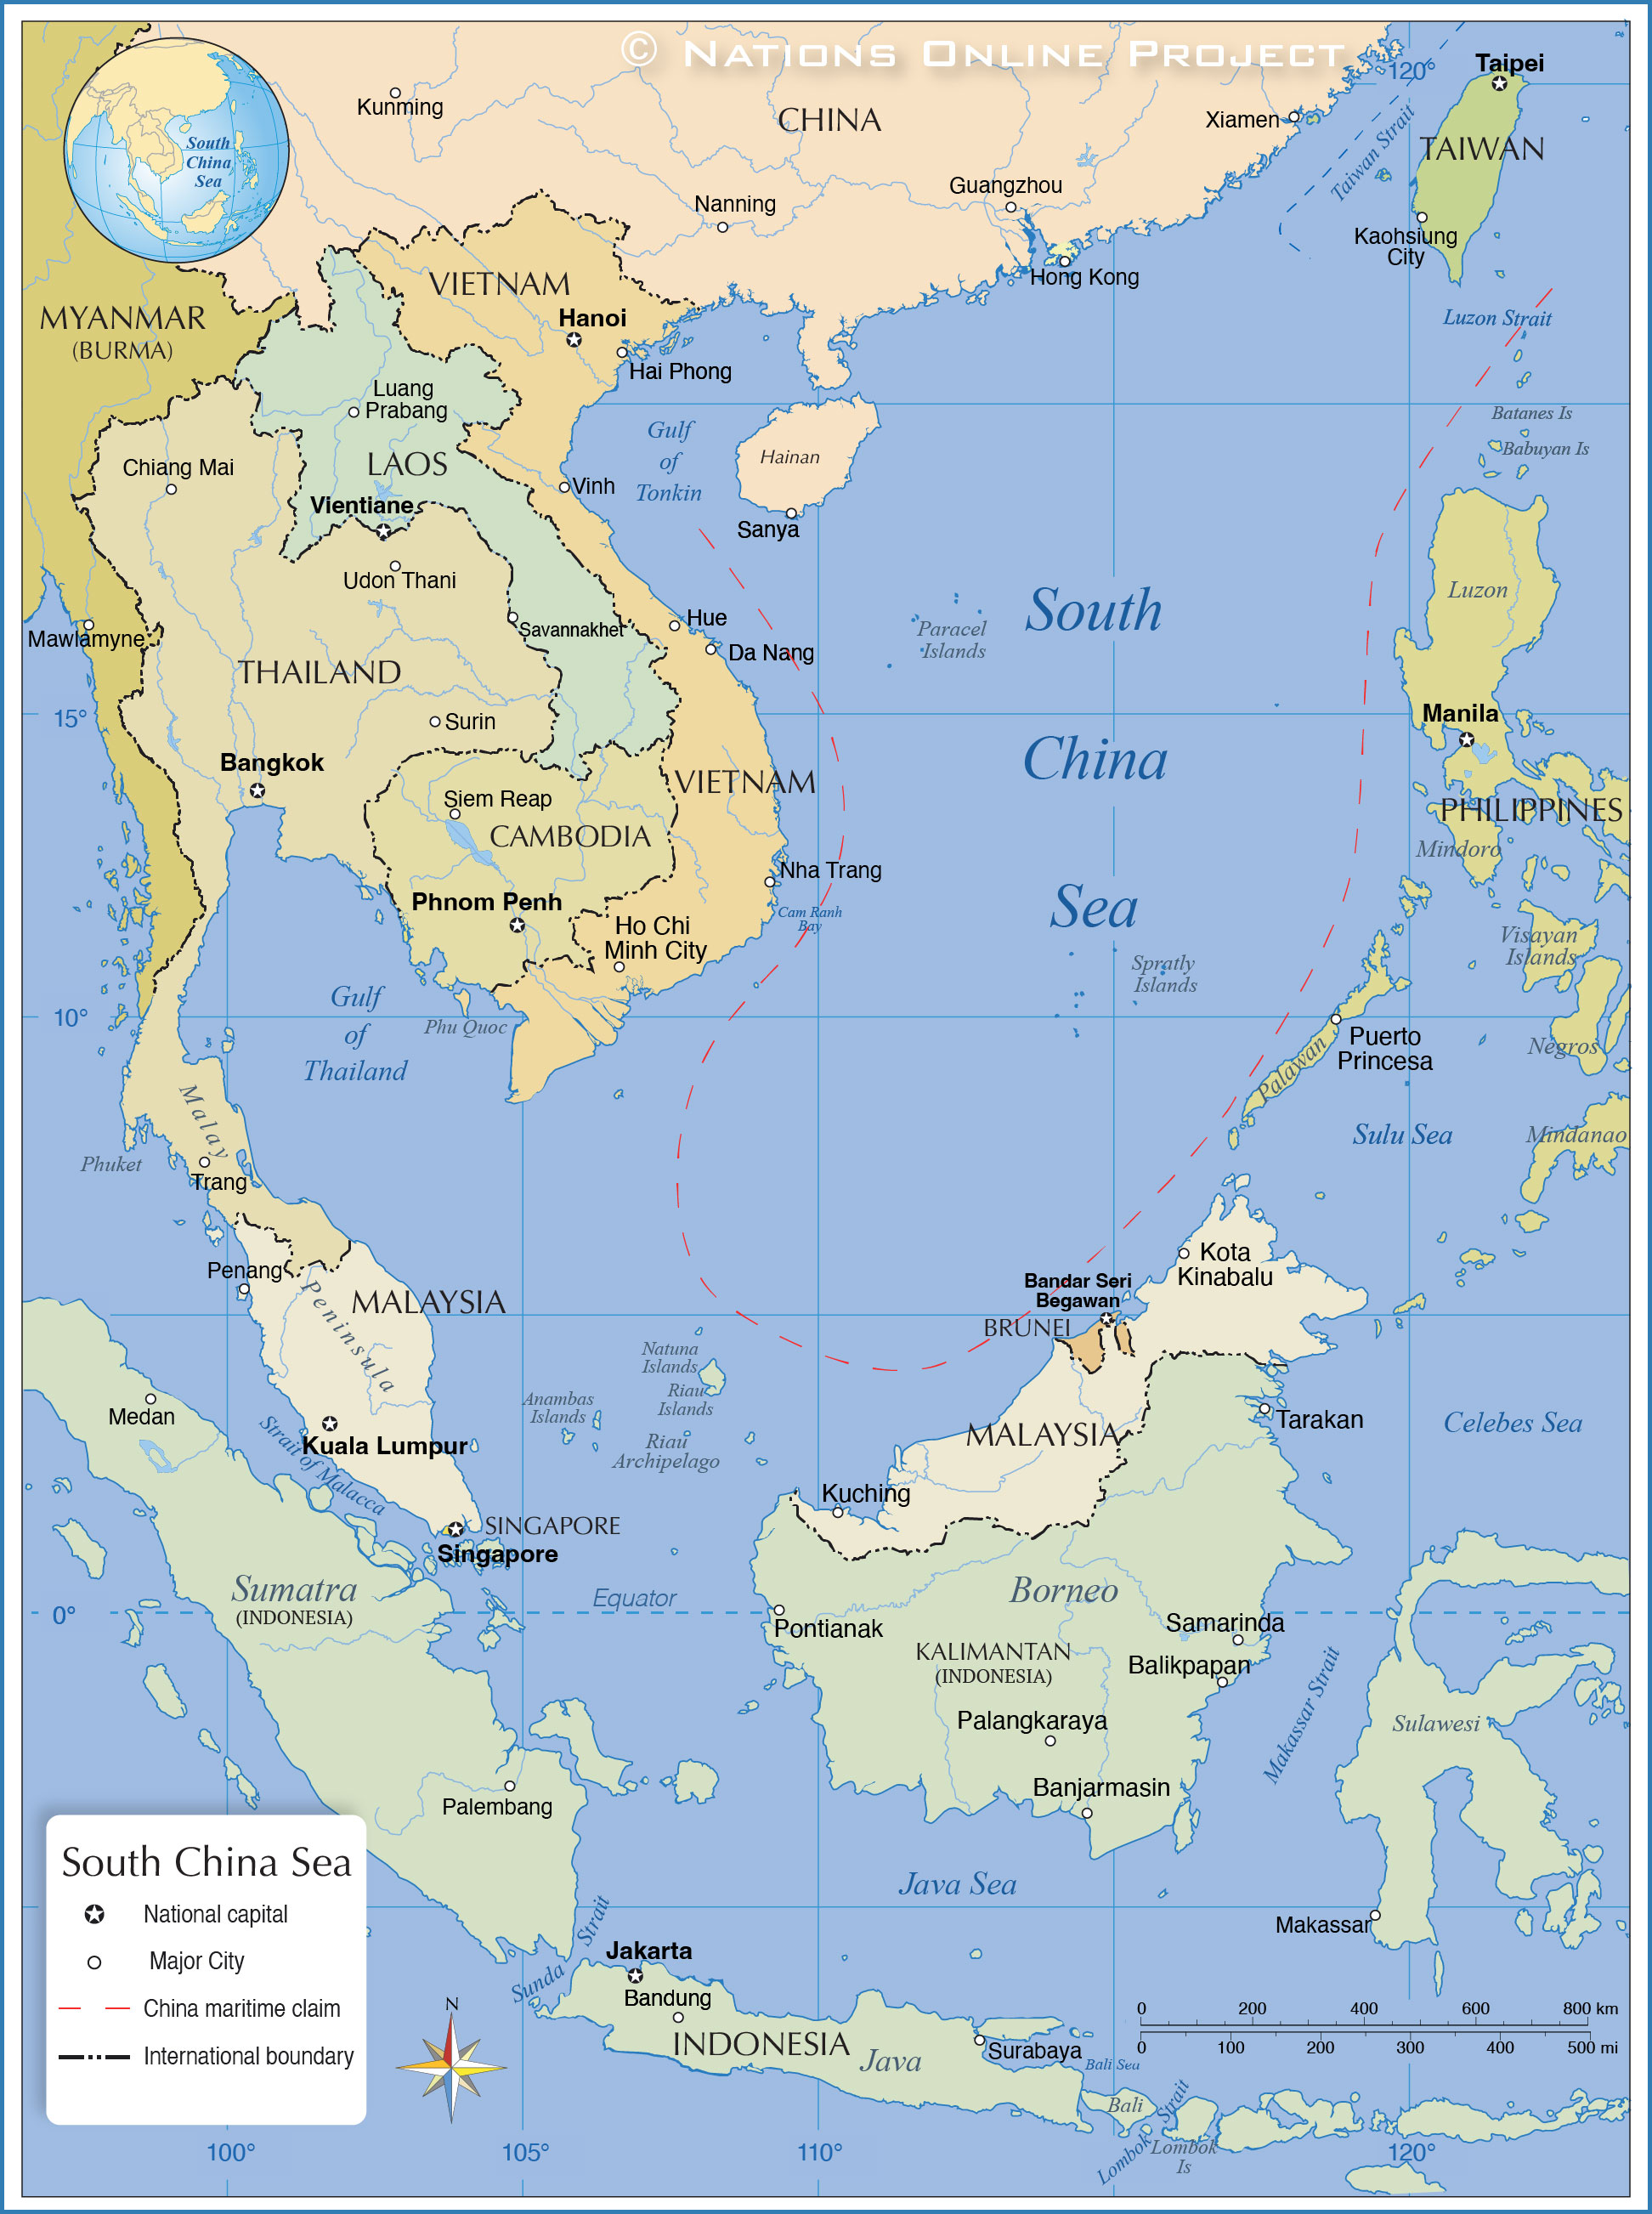 China Sea Map Political Map of South China Sea   Nations Online Project